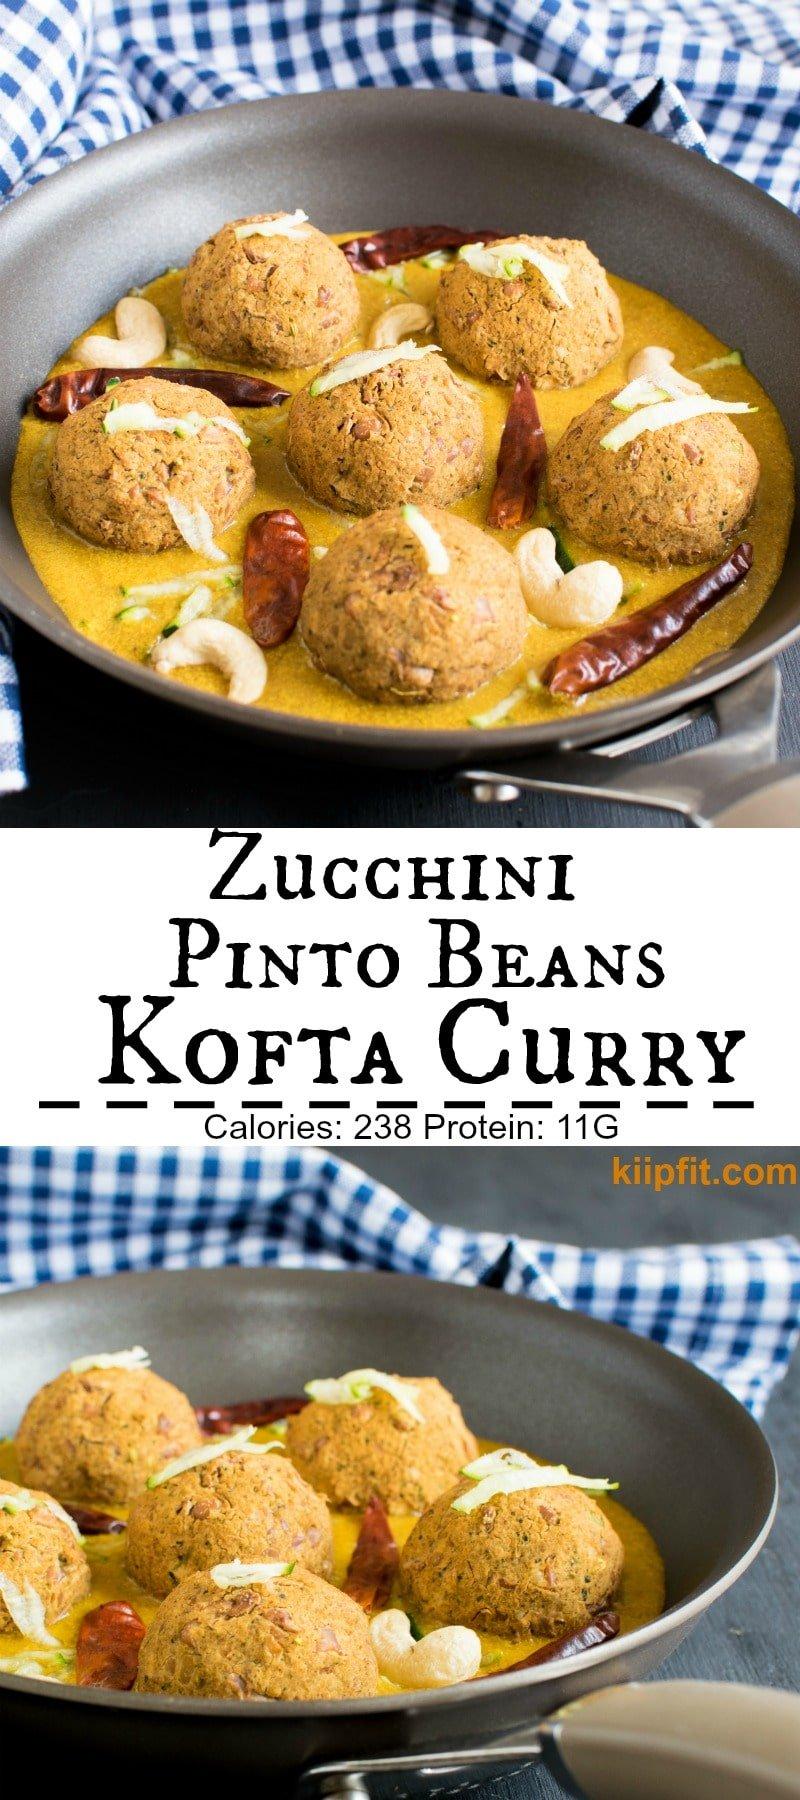 Call it a kofta or meatballs Zucchini Pinto Beans Kofta in Spicy Cashew Curry is definitely a show stopper. I am completely amazed of the exquisite taste of this oil free entree. This entree is absolutely a pleasure to the taste buds. My family loves it and demands this entrée at least once a week [ vegan + GF + Oil free ] kiipfit.com